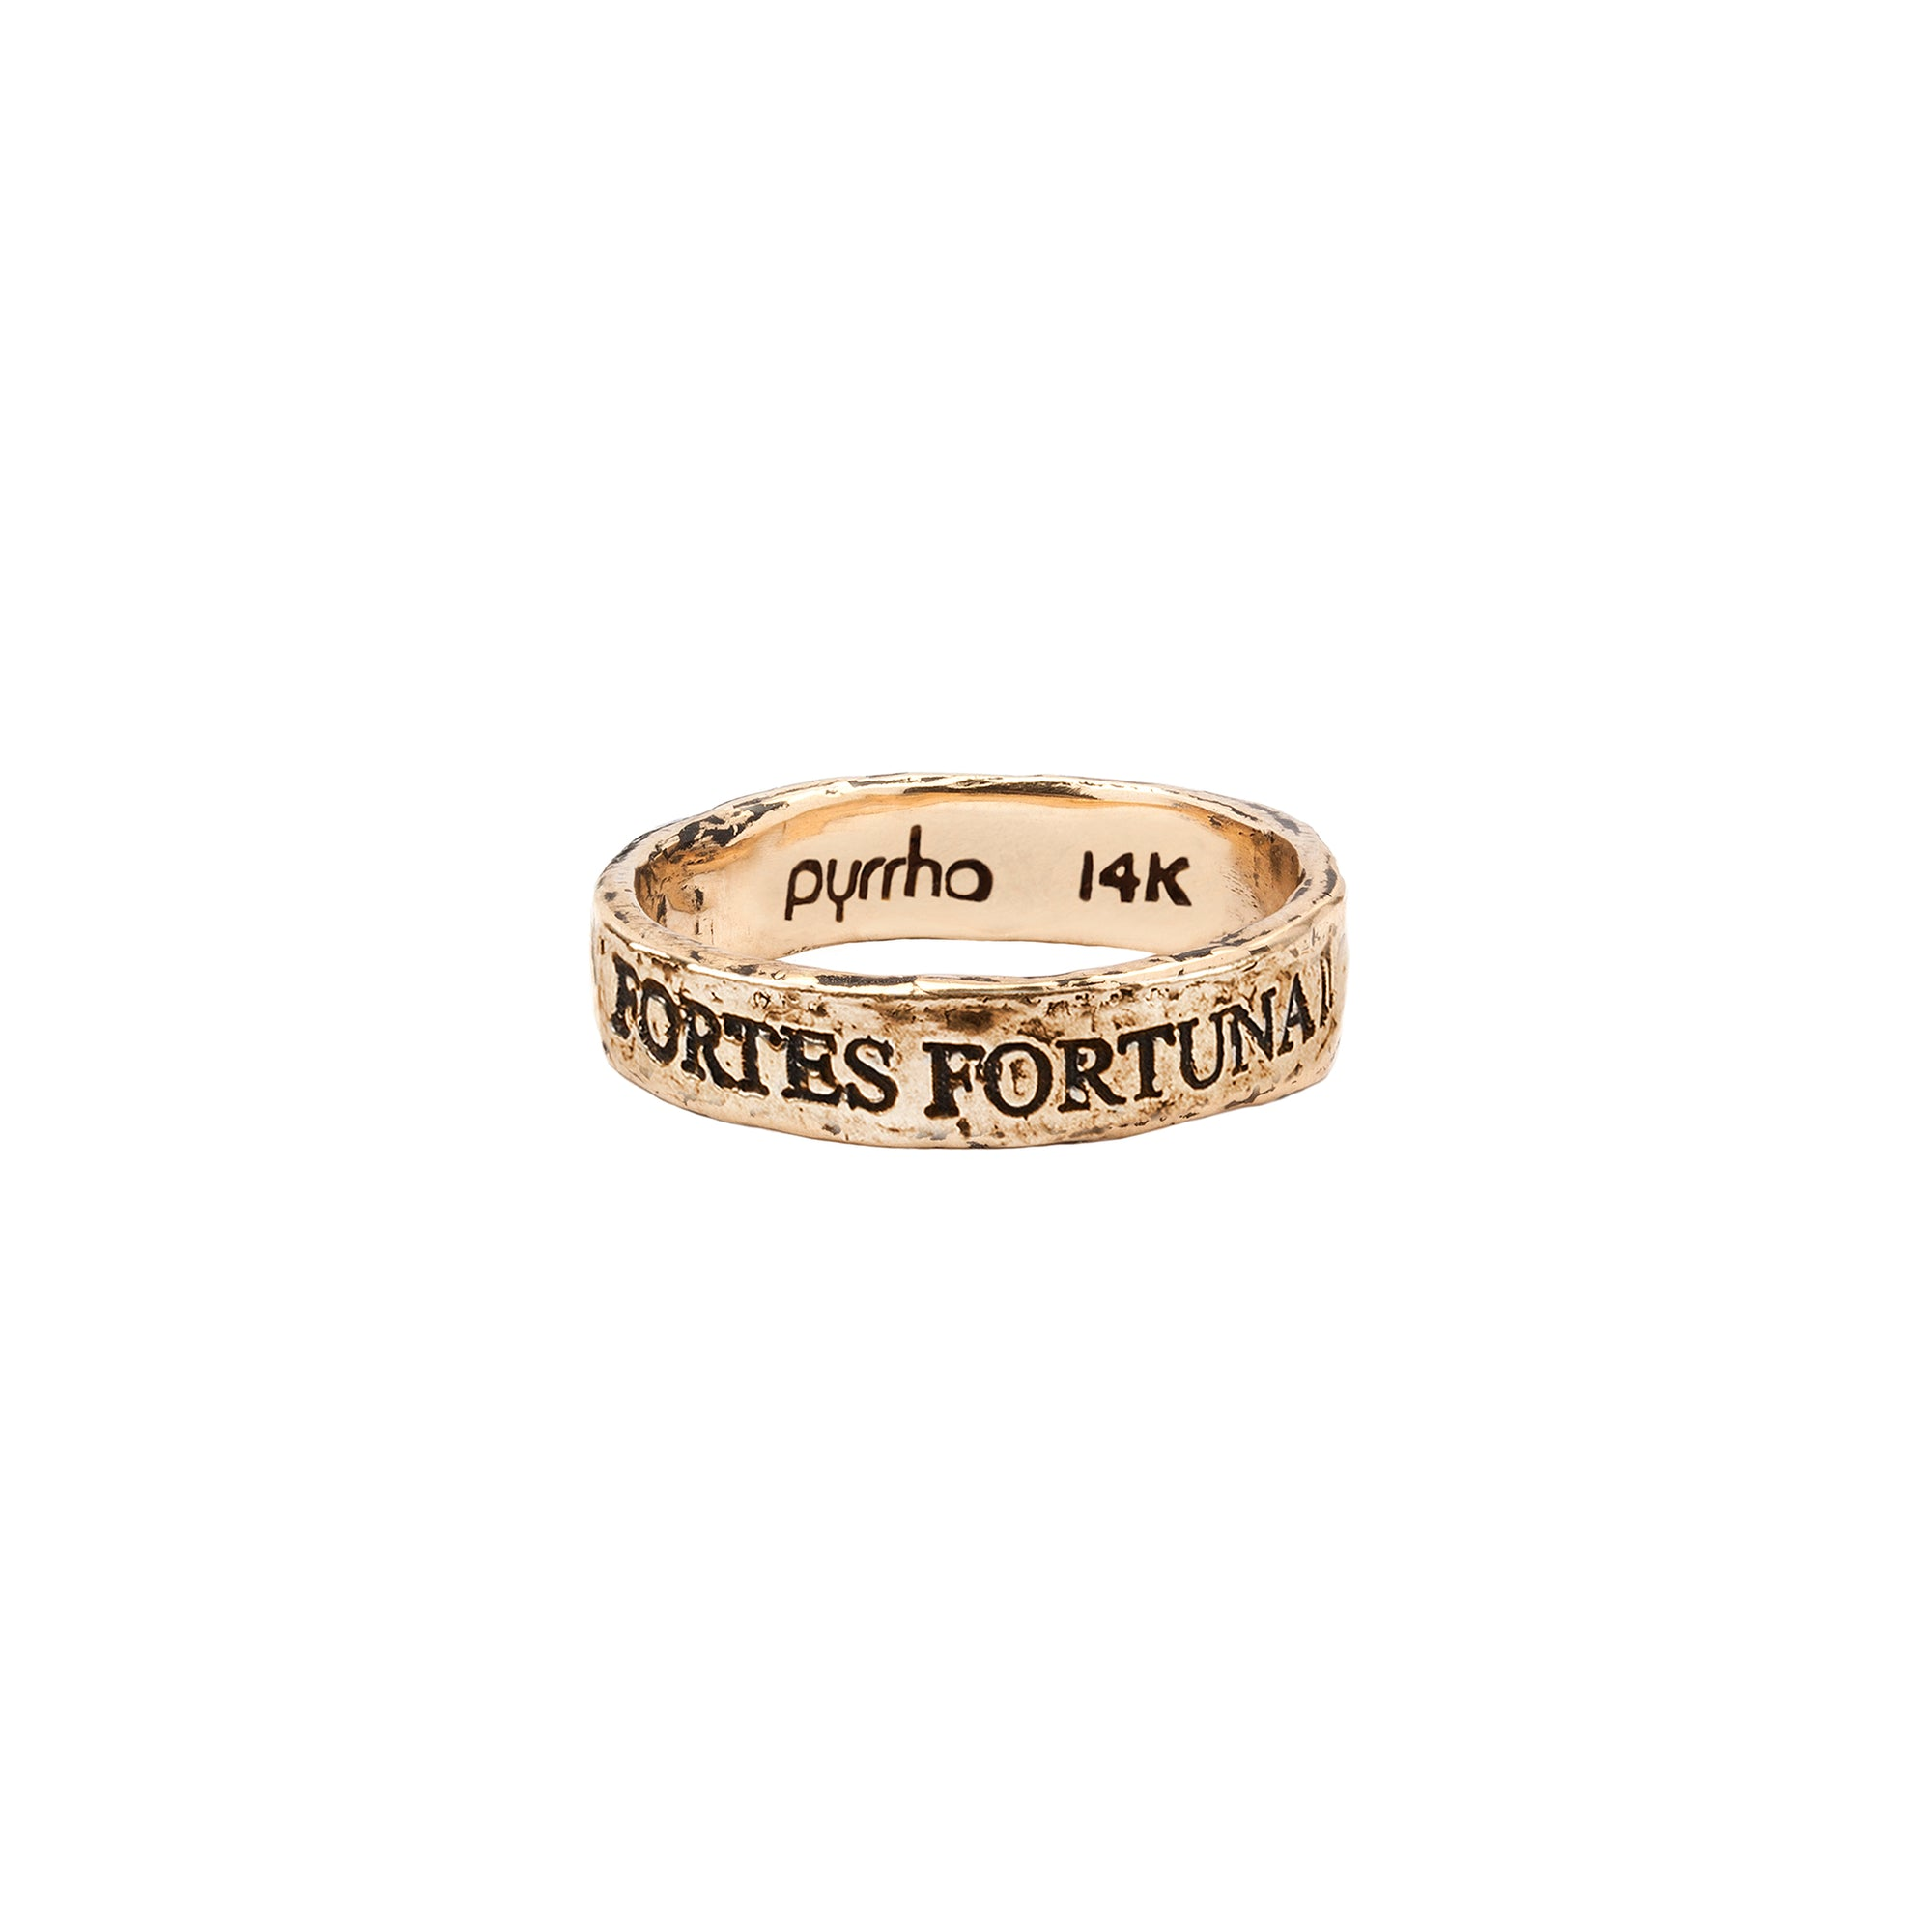 Pyrrha 14k fortes fortuna luvat latin motto band ring